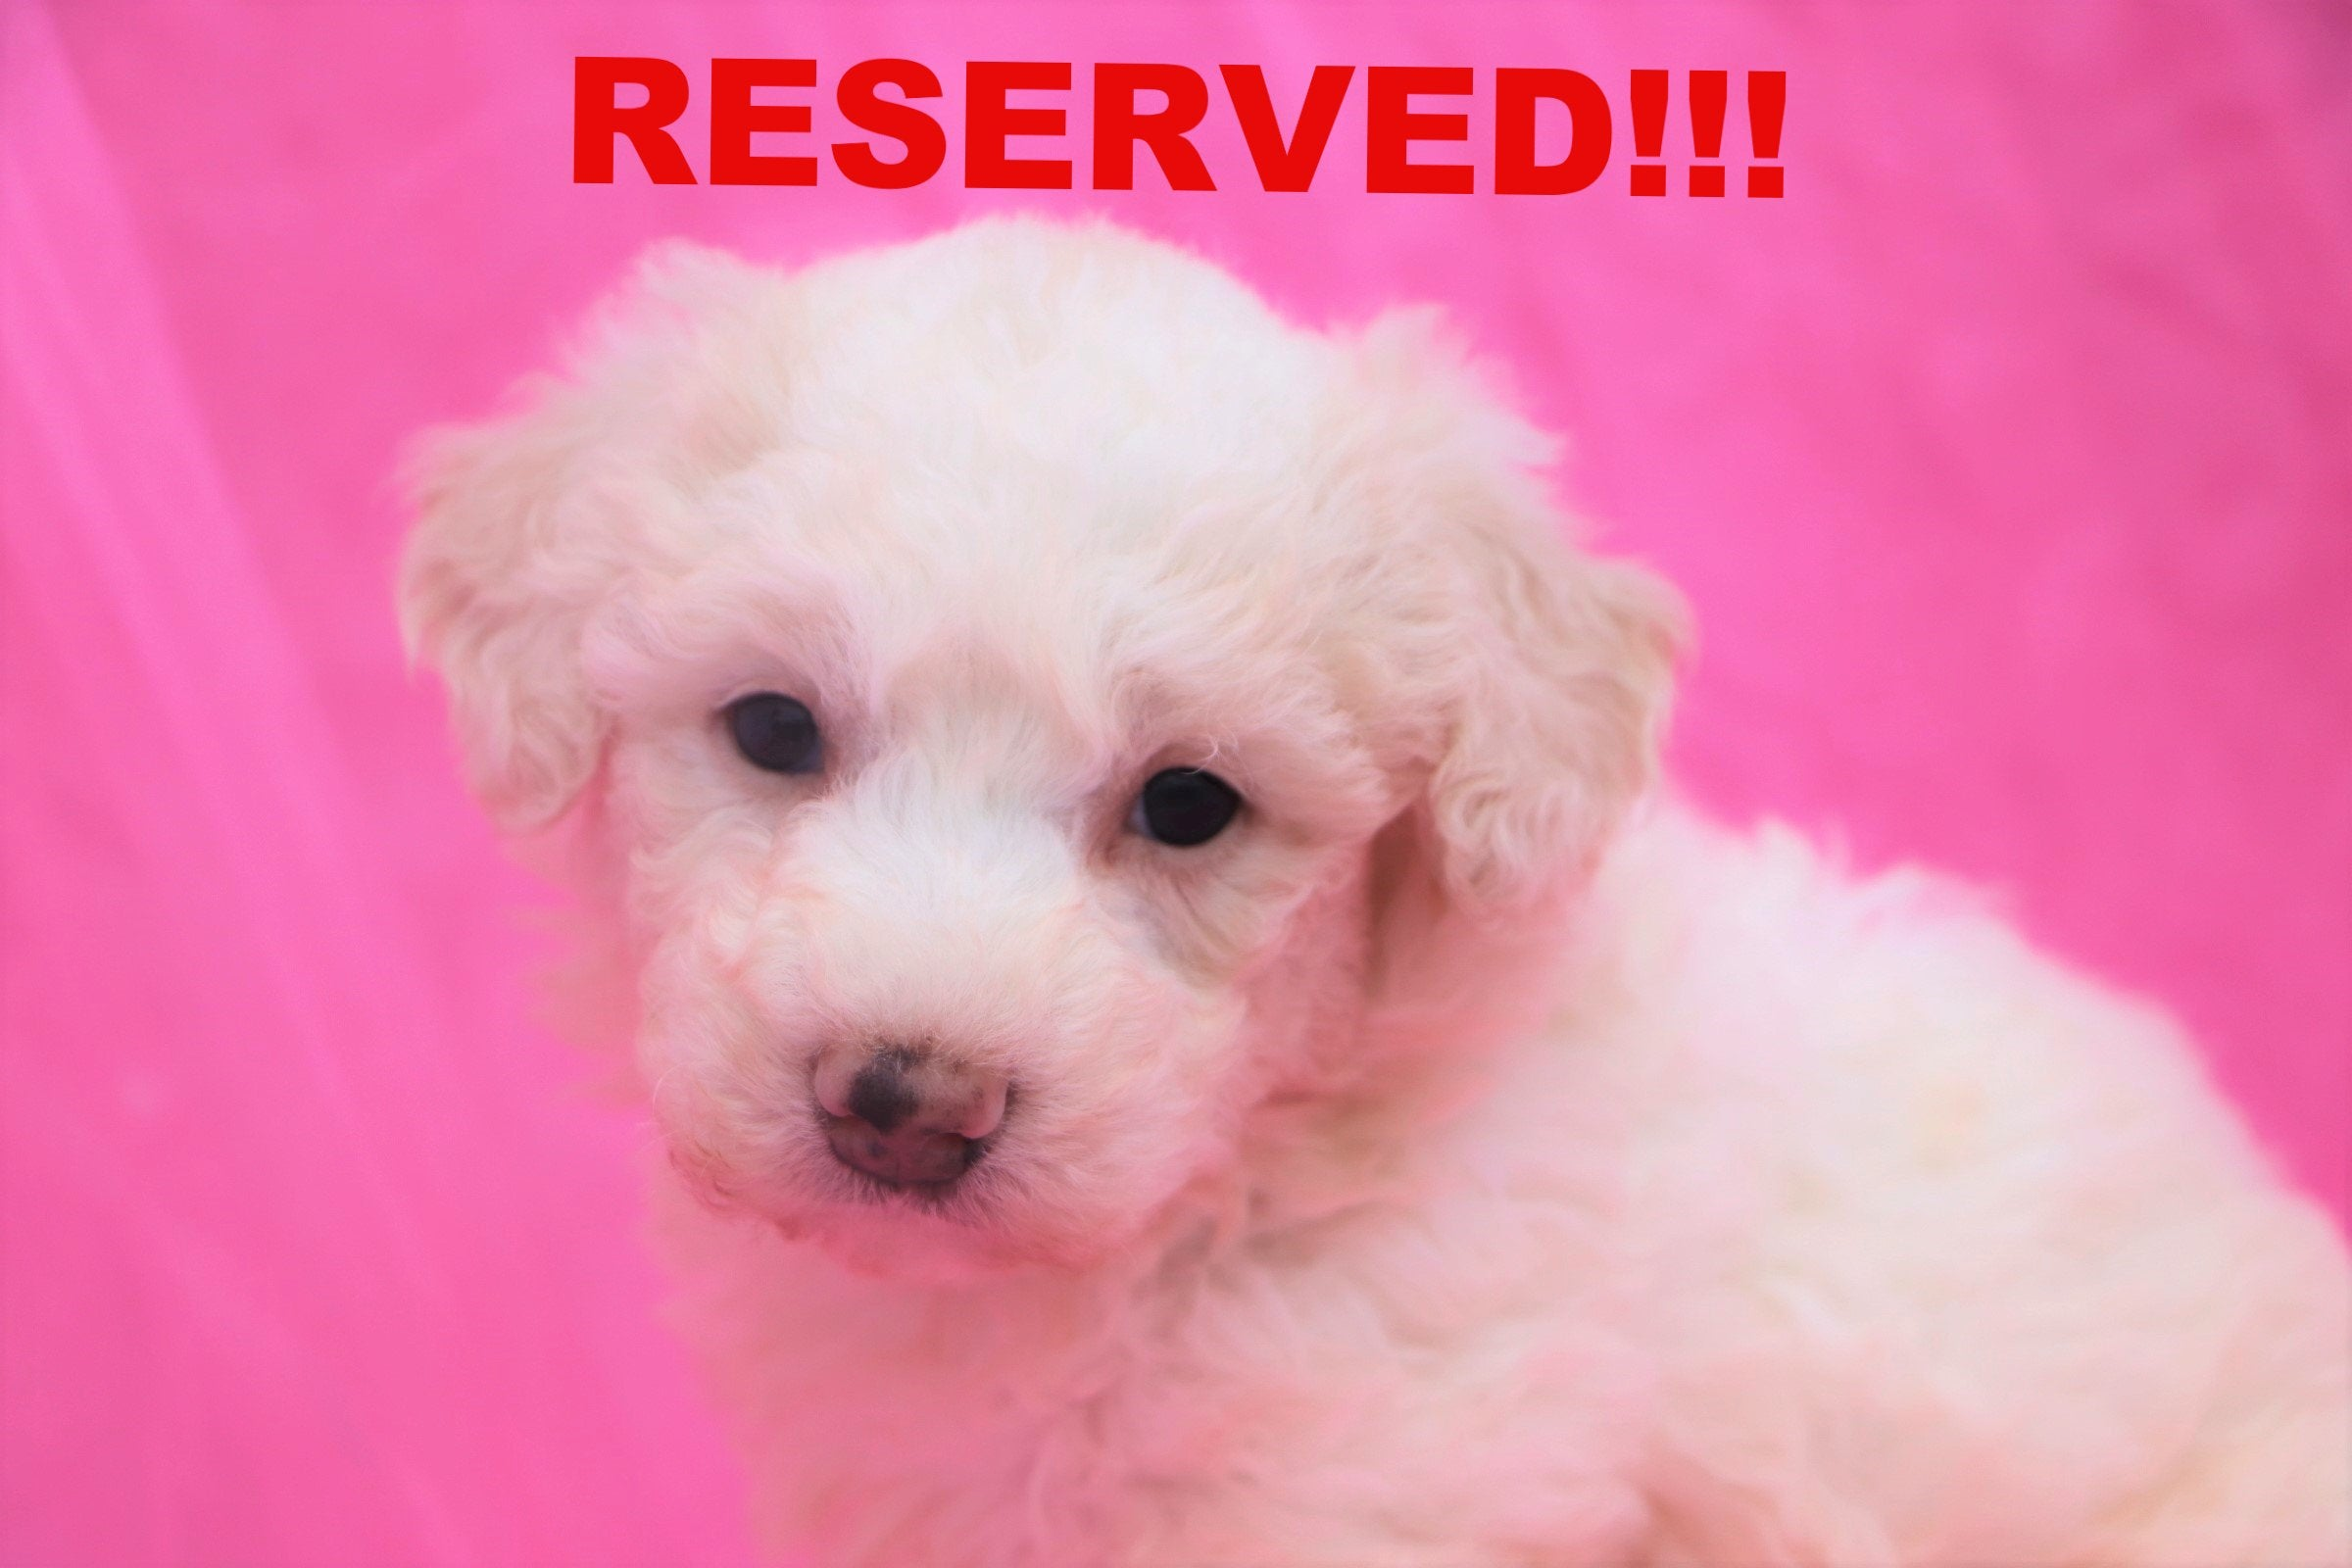 Katie Female Bichon Frise Puppy